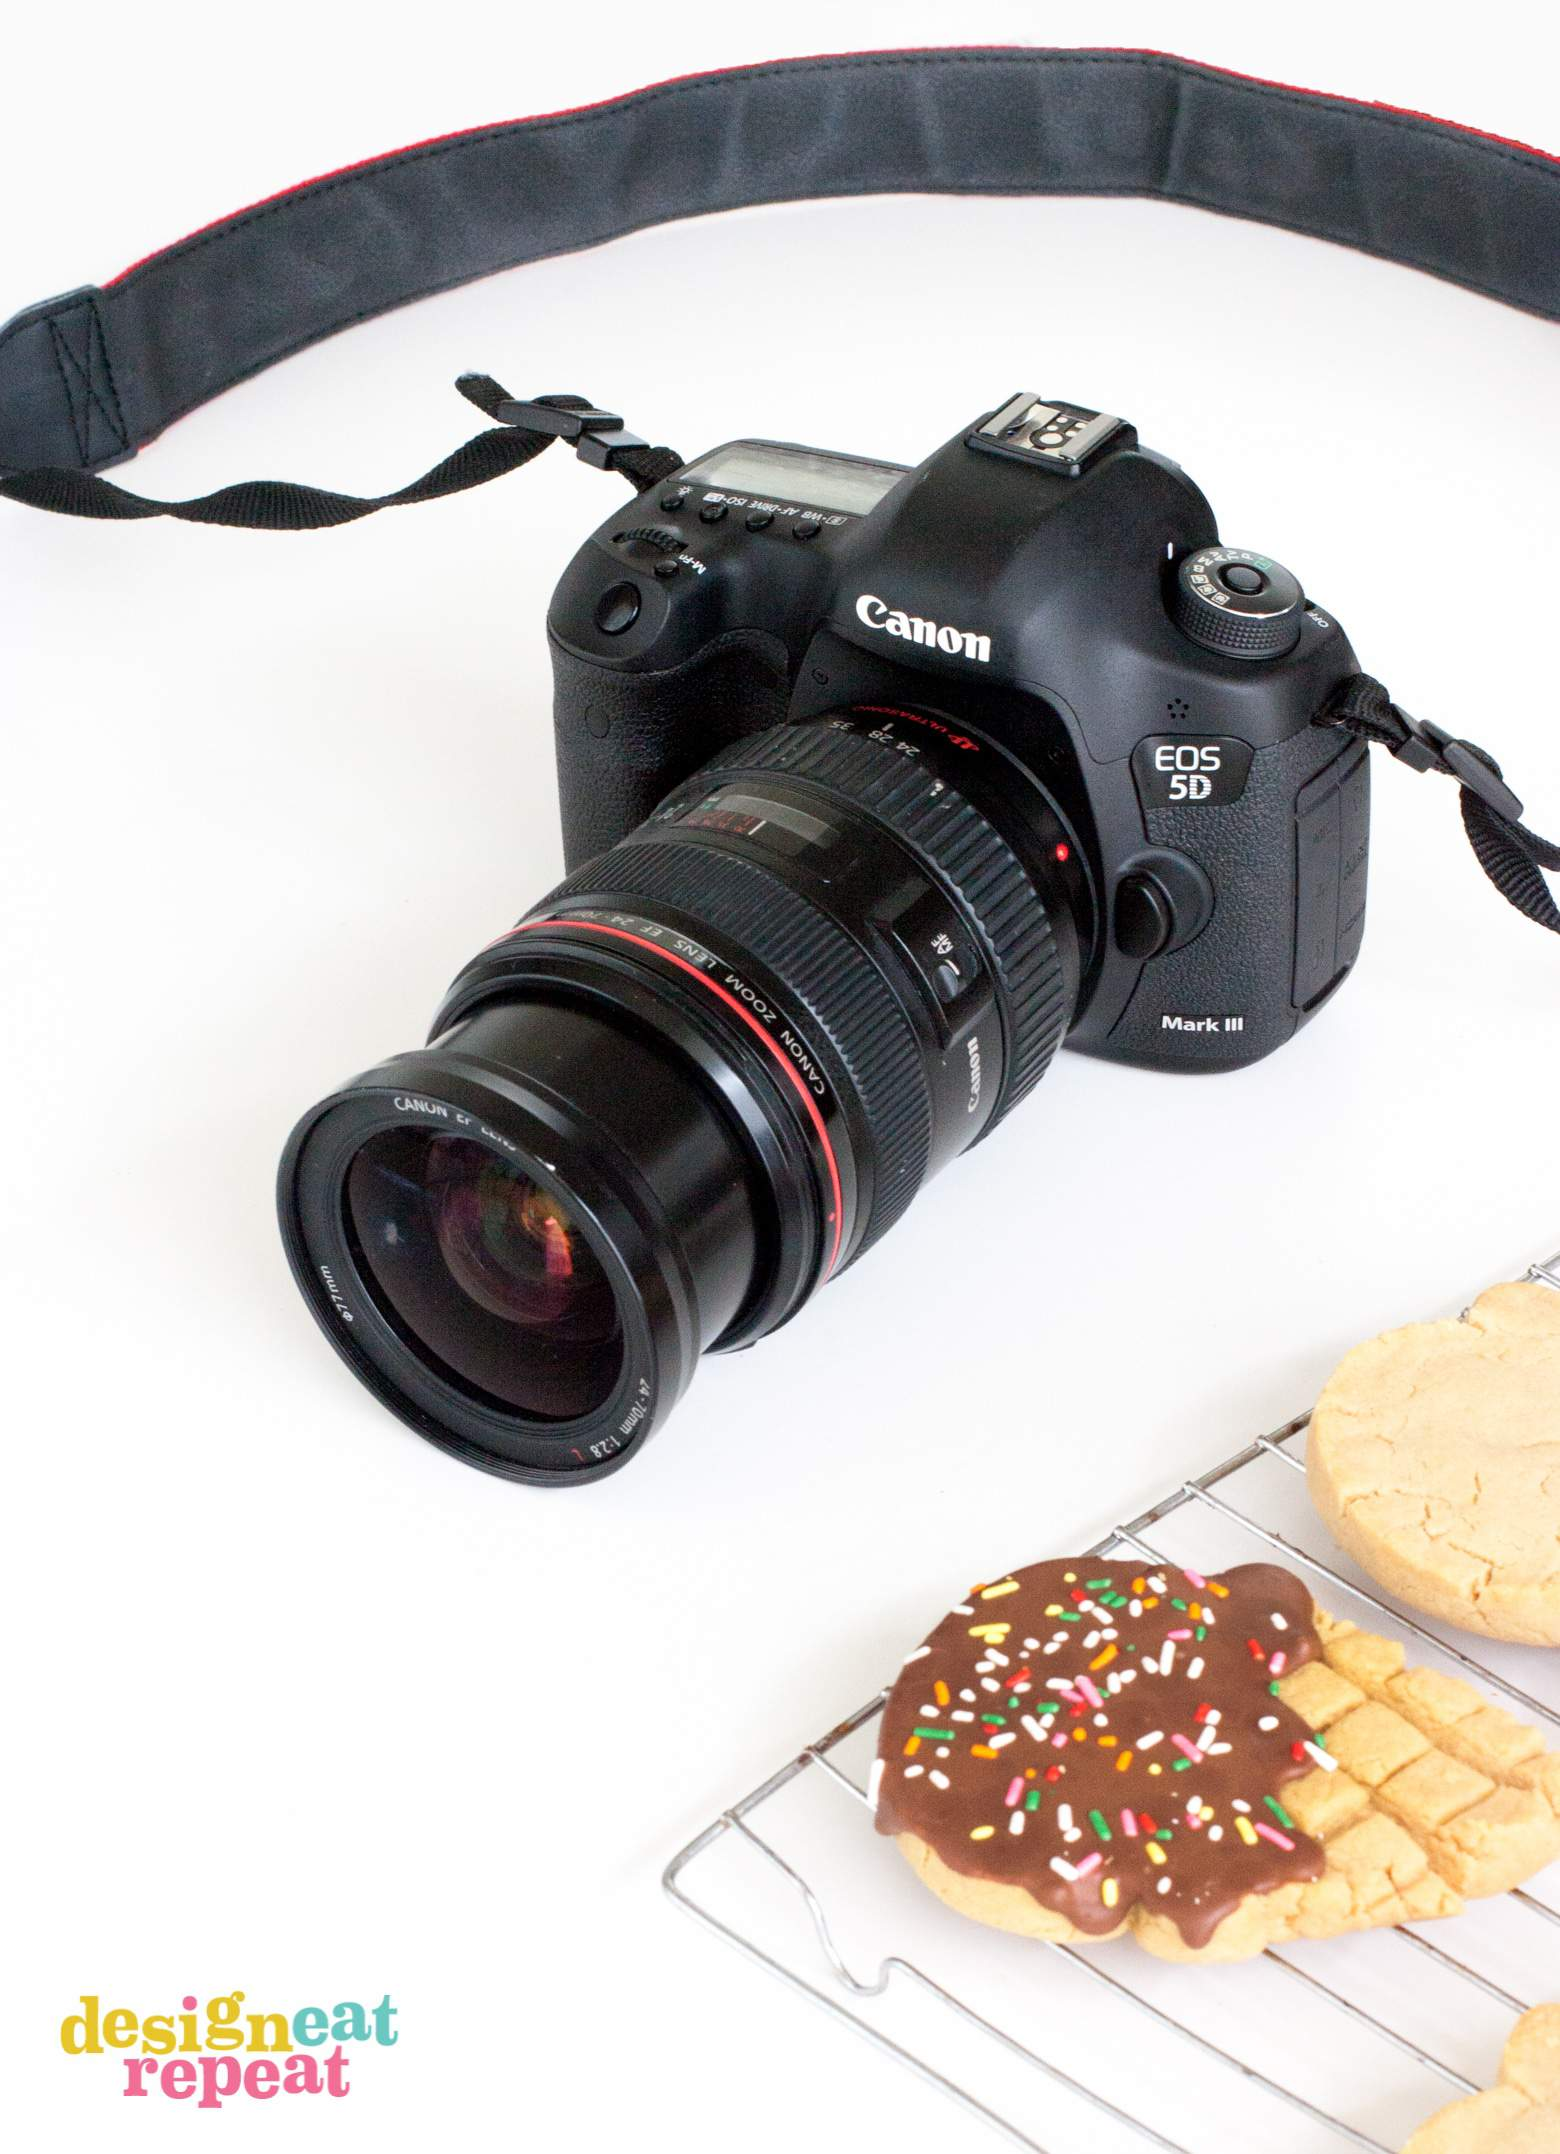 Go behind-the-scenes with Food & DIY blogger, Melissa at Design Eat Repeat, where she shows you her at-home photo setup and gear. Everything from cameras, backdrops, and editing software. Very helpful post!